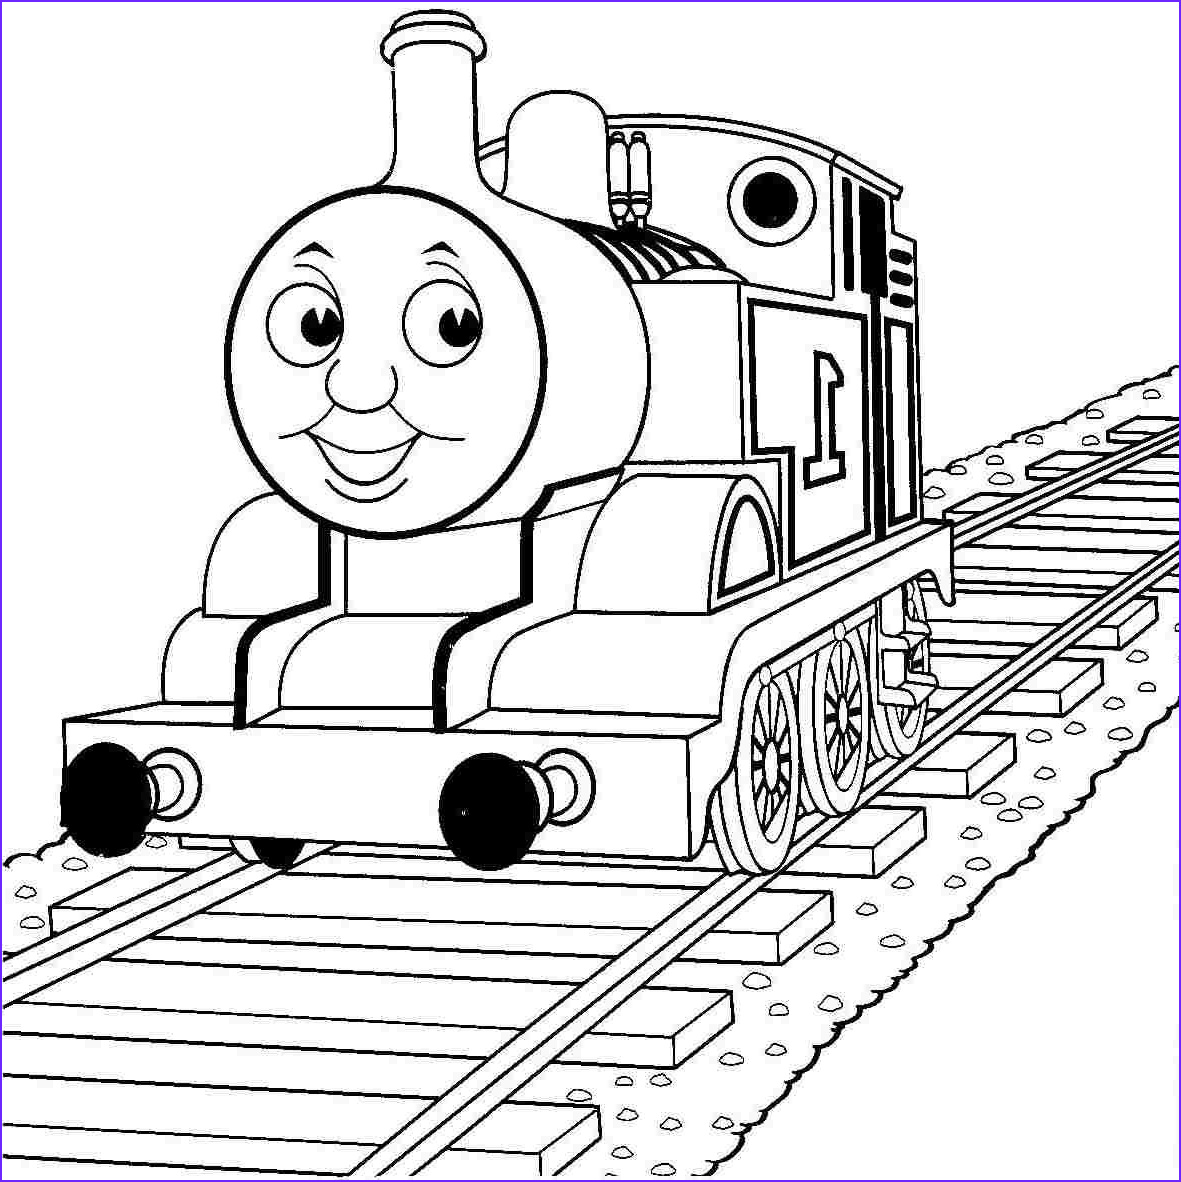 Thomas the Train Coloring Beautiful Collection Thomas the Train Coloring Page Color Periods